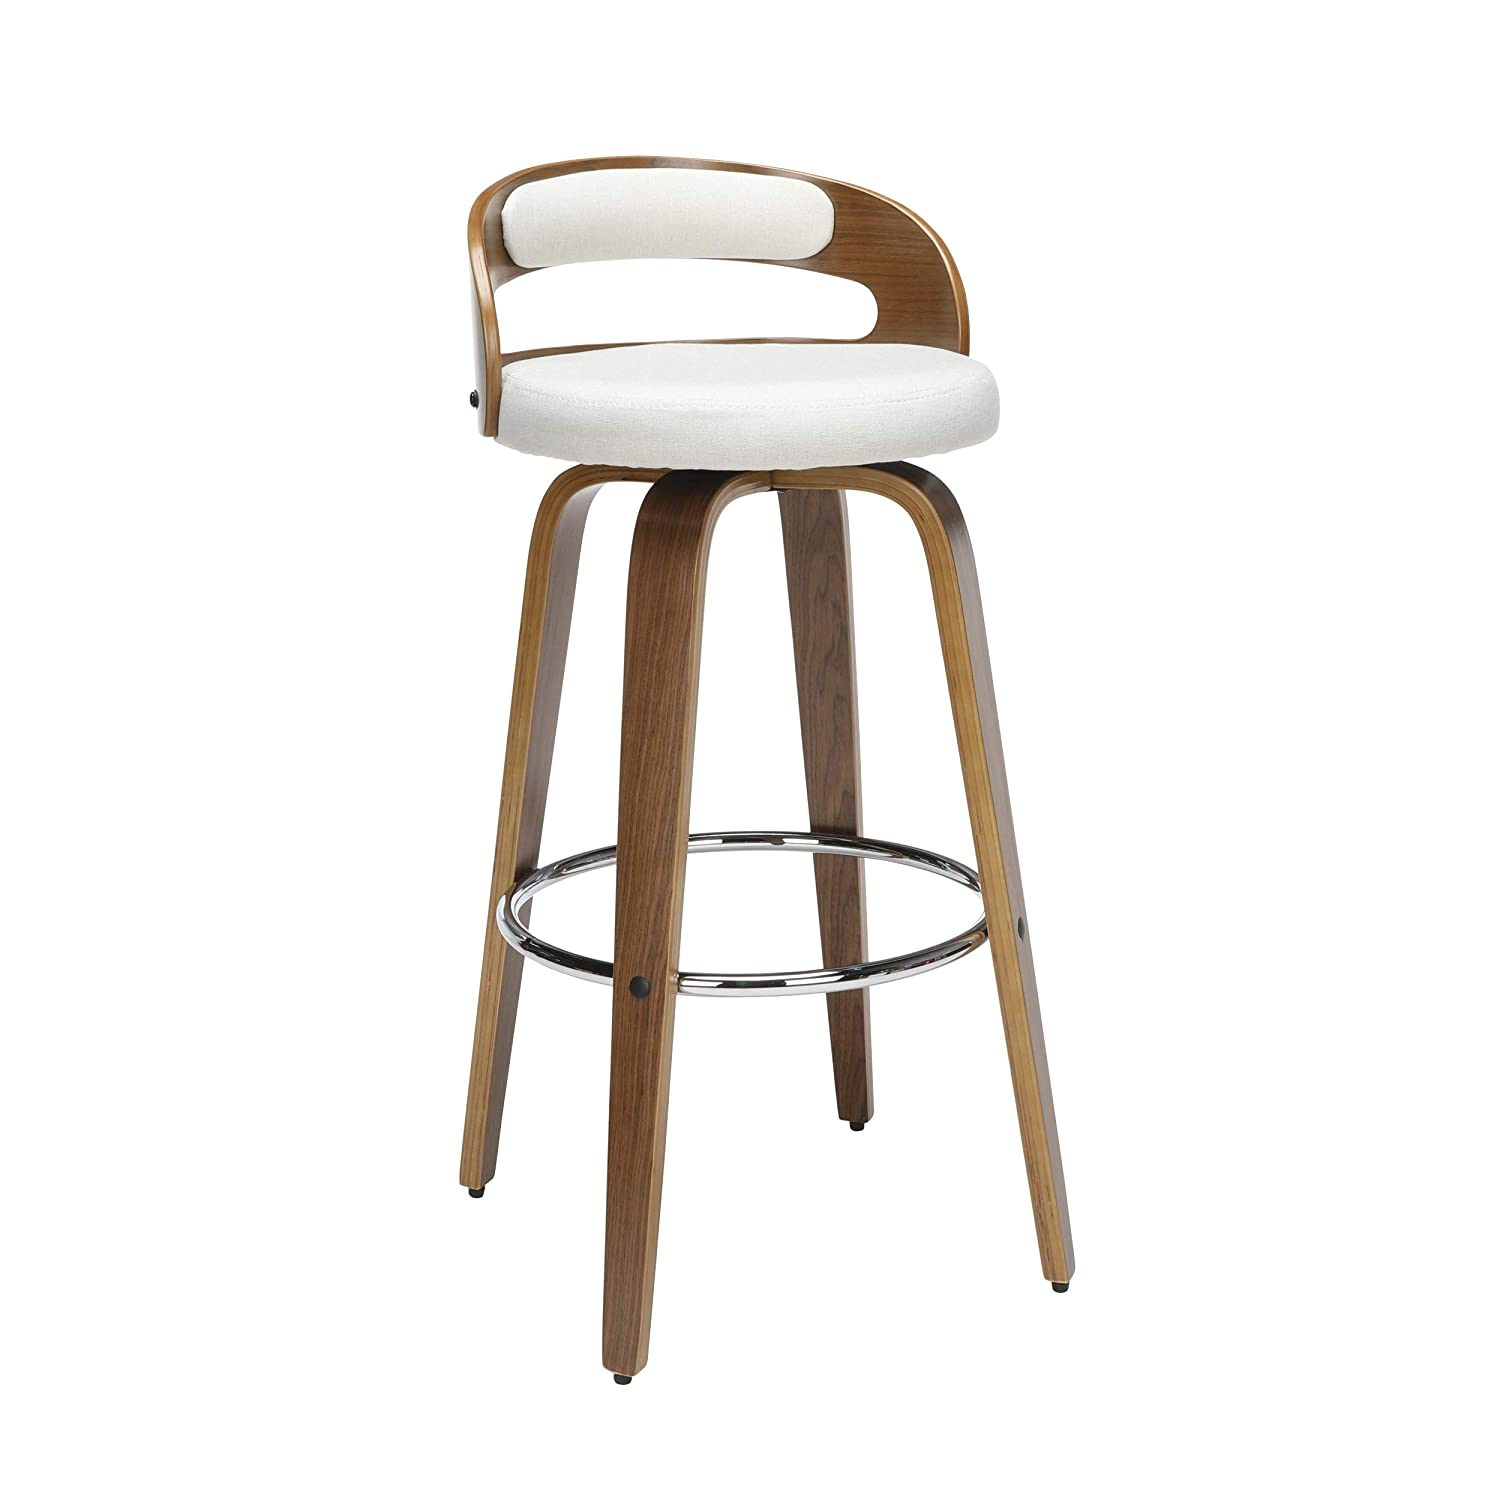 "OFM 161 Collection Mid Century Modern 30"" Low Back Bentwood Frame Swivel Seat Stool with Fabric Back and Seat Cushion, in Walnut/Beige"